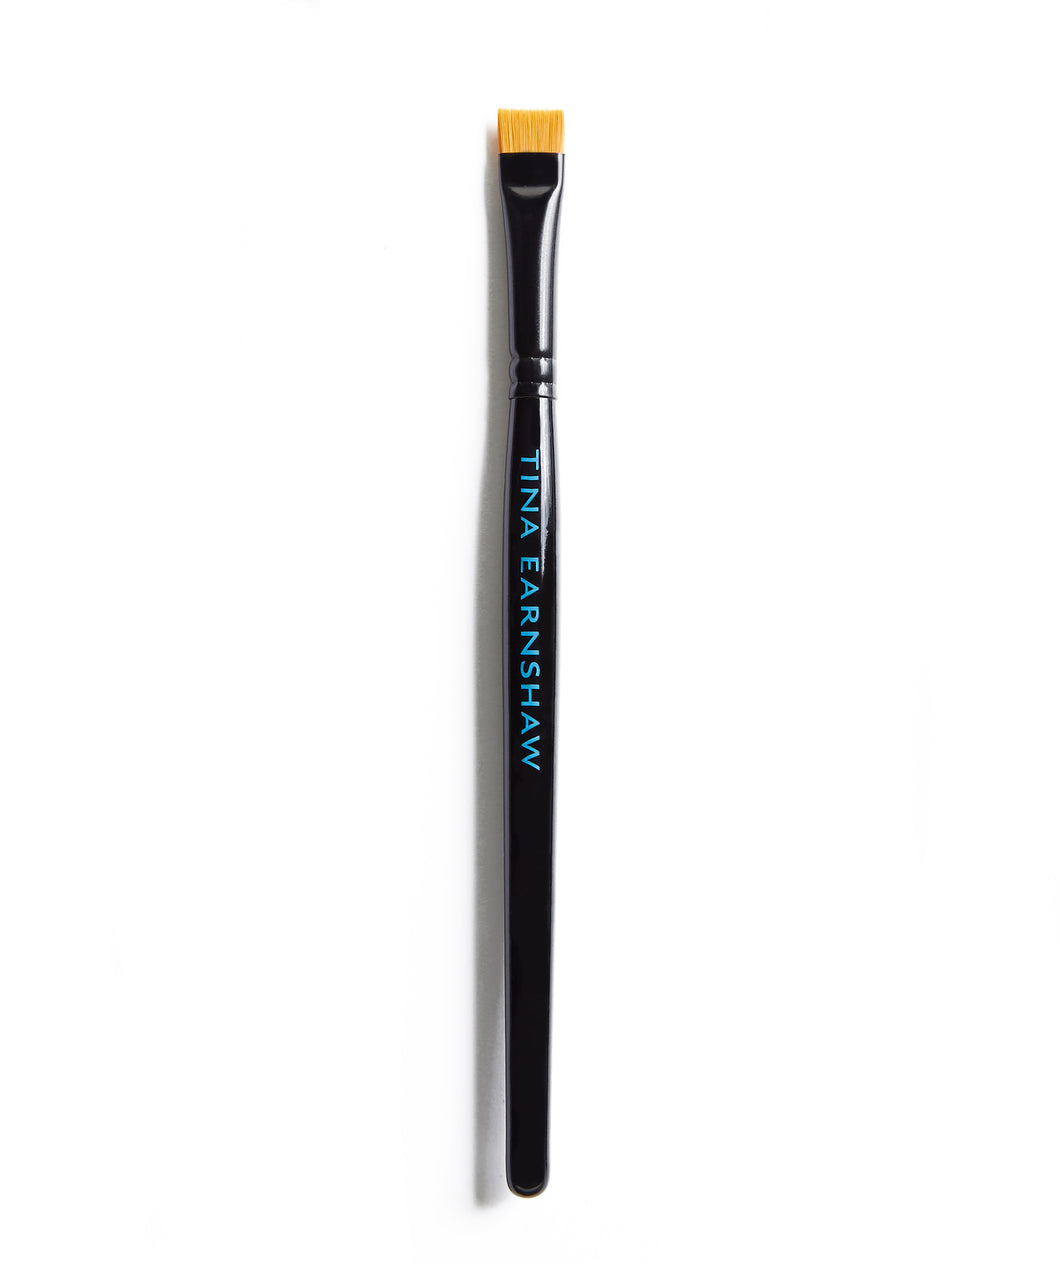 Flat Eyeliner Brush - No14